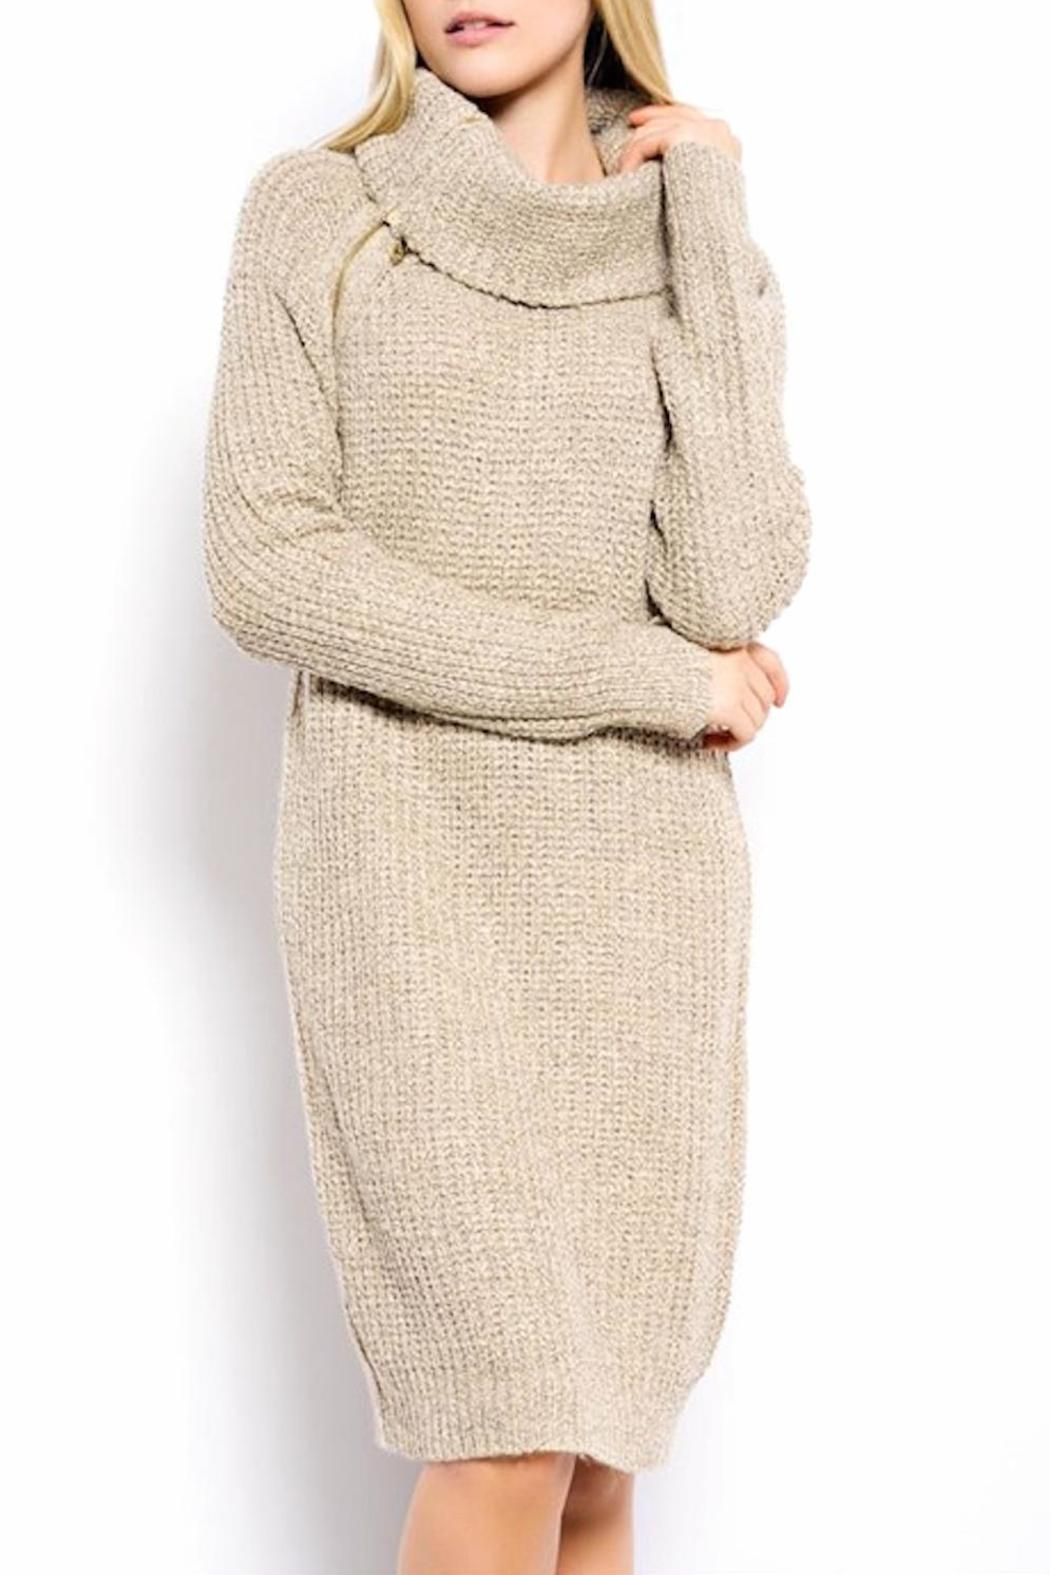 c4a29d77a39 la di da dee Webster Sweater Dress from Brooklyn — Shoptiques